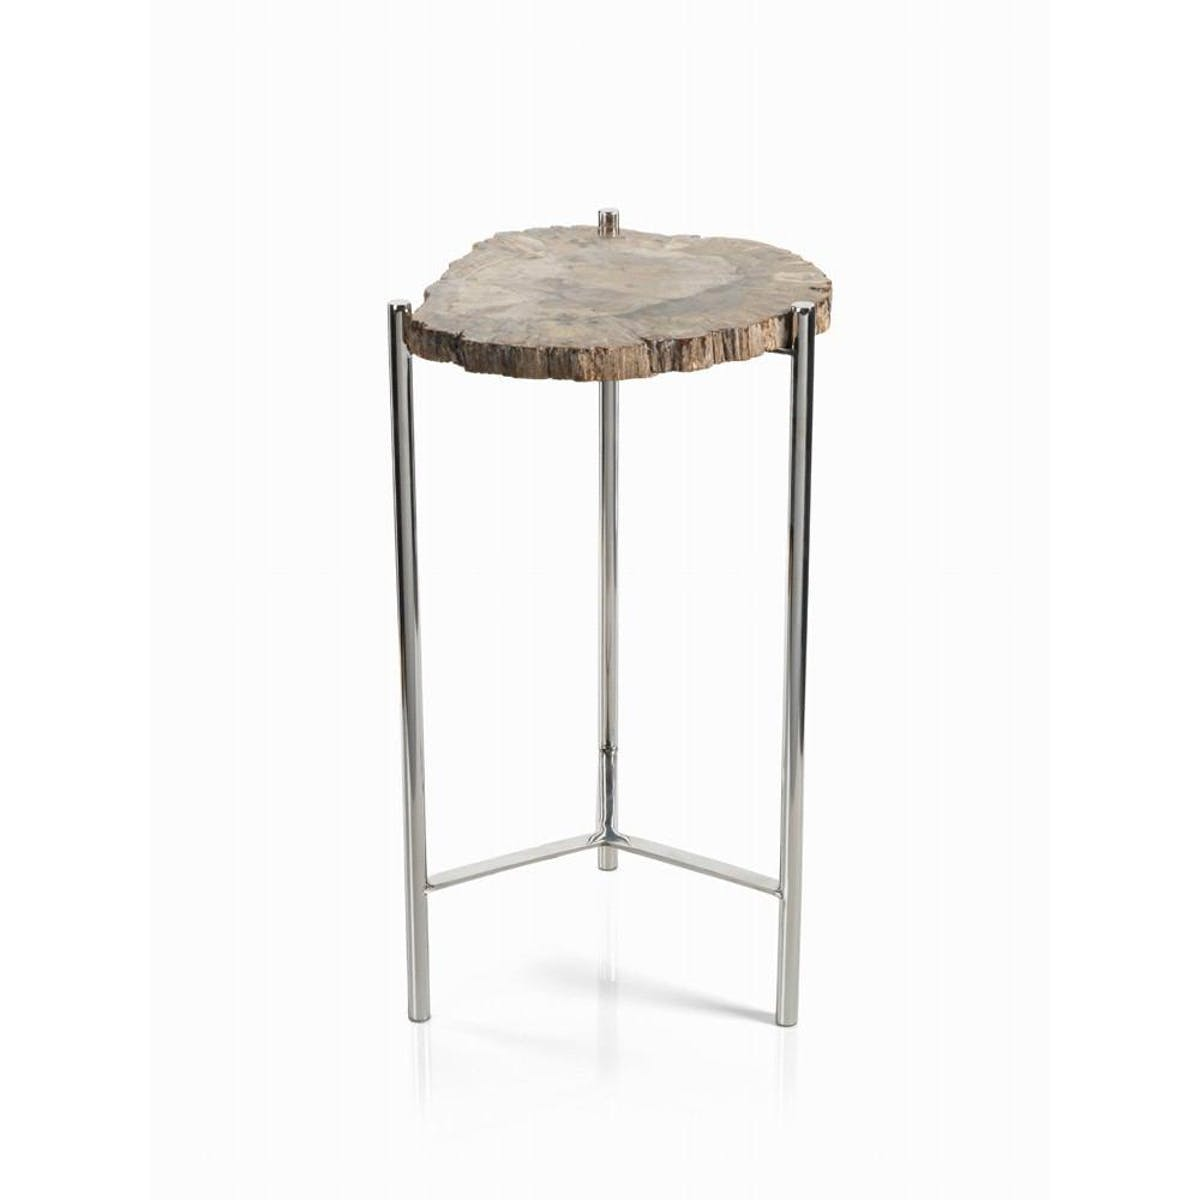 zodax pierce petrified wood accent table inch tall modish balcony umbrella danish end round silver strip between carpet and tile small dark console tilt diy plans large marble